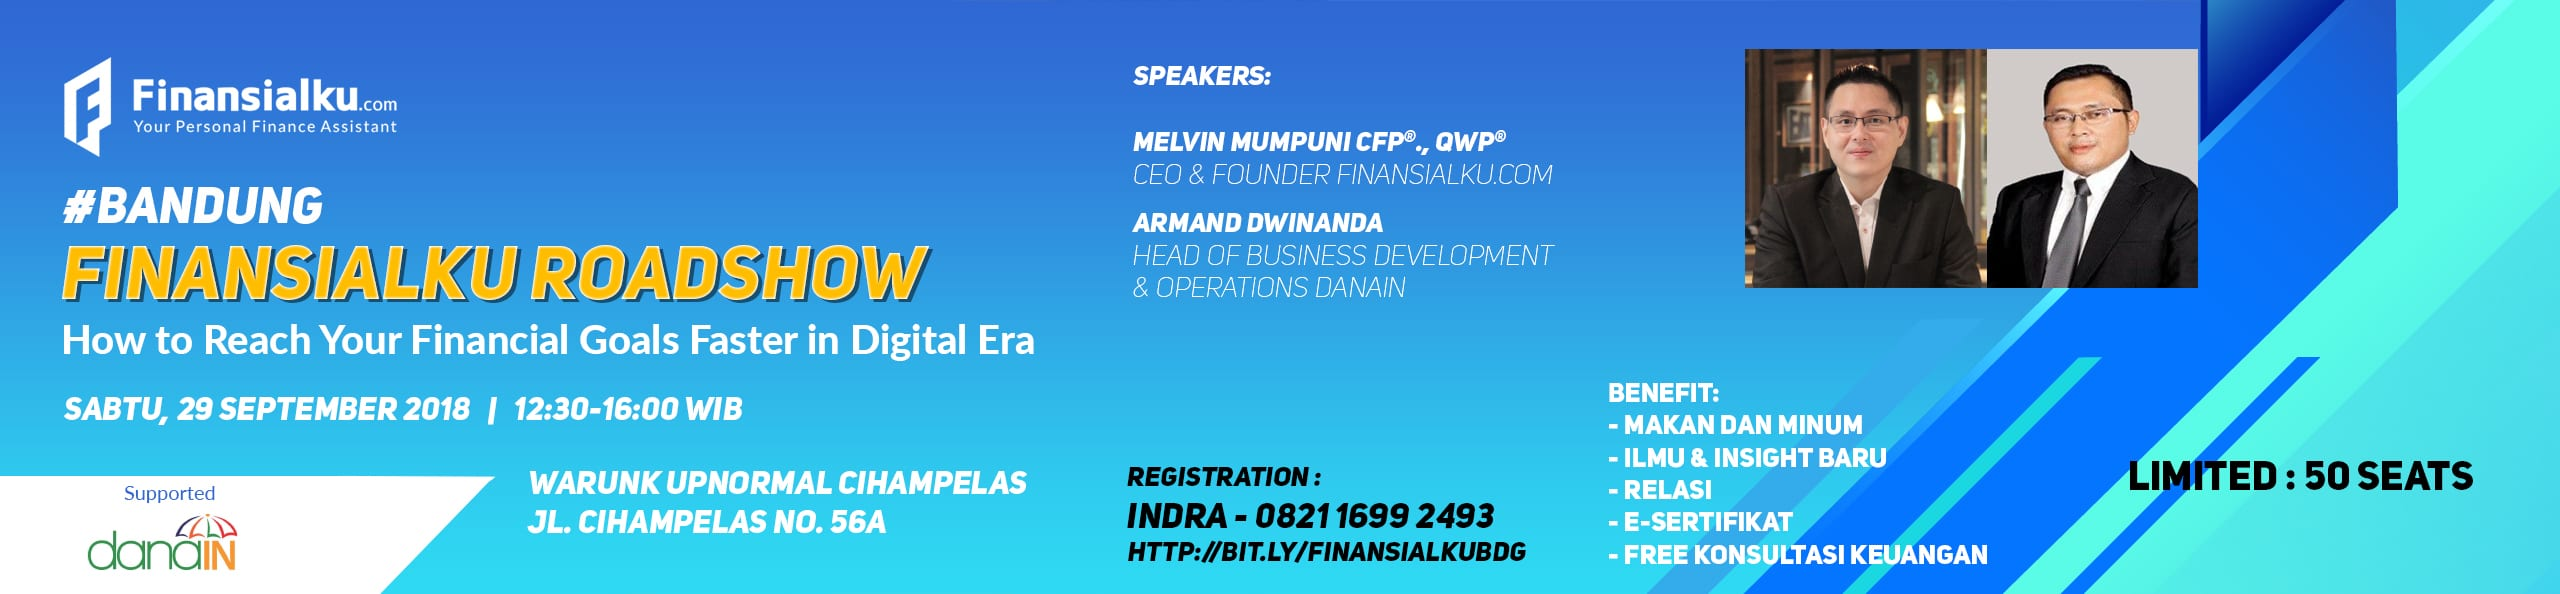 Event How to Reach Your Financial Goals Faster in Digital Era B (2)